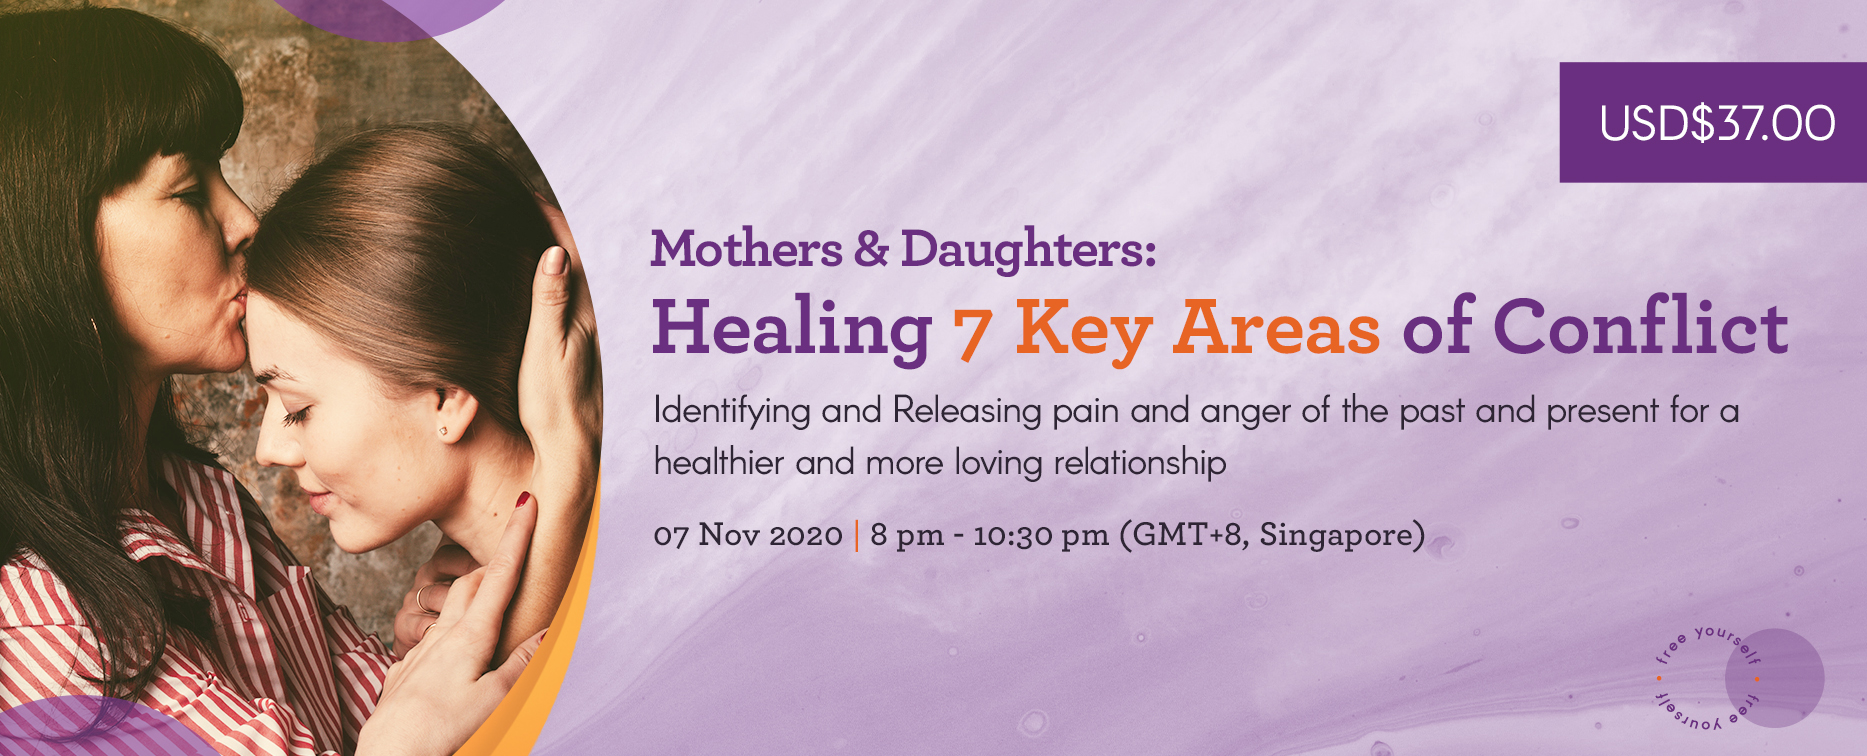 Mothers & Daughters: Healing 7 Key Areas of Conflict